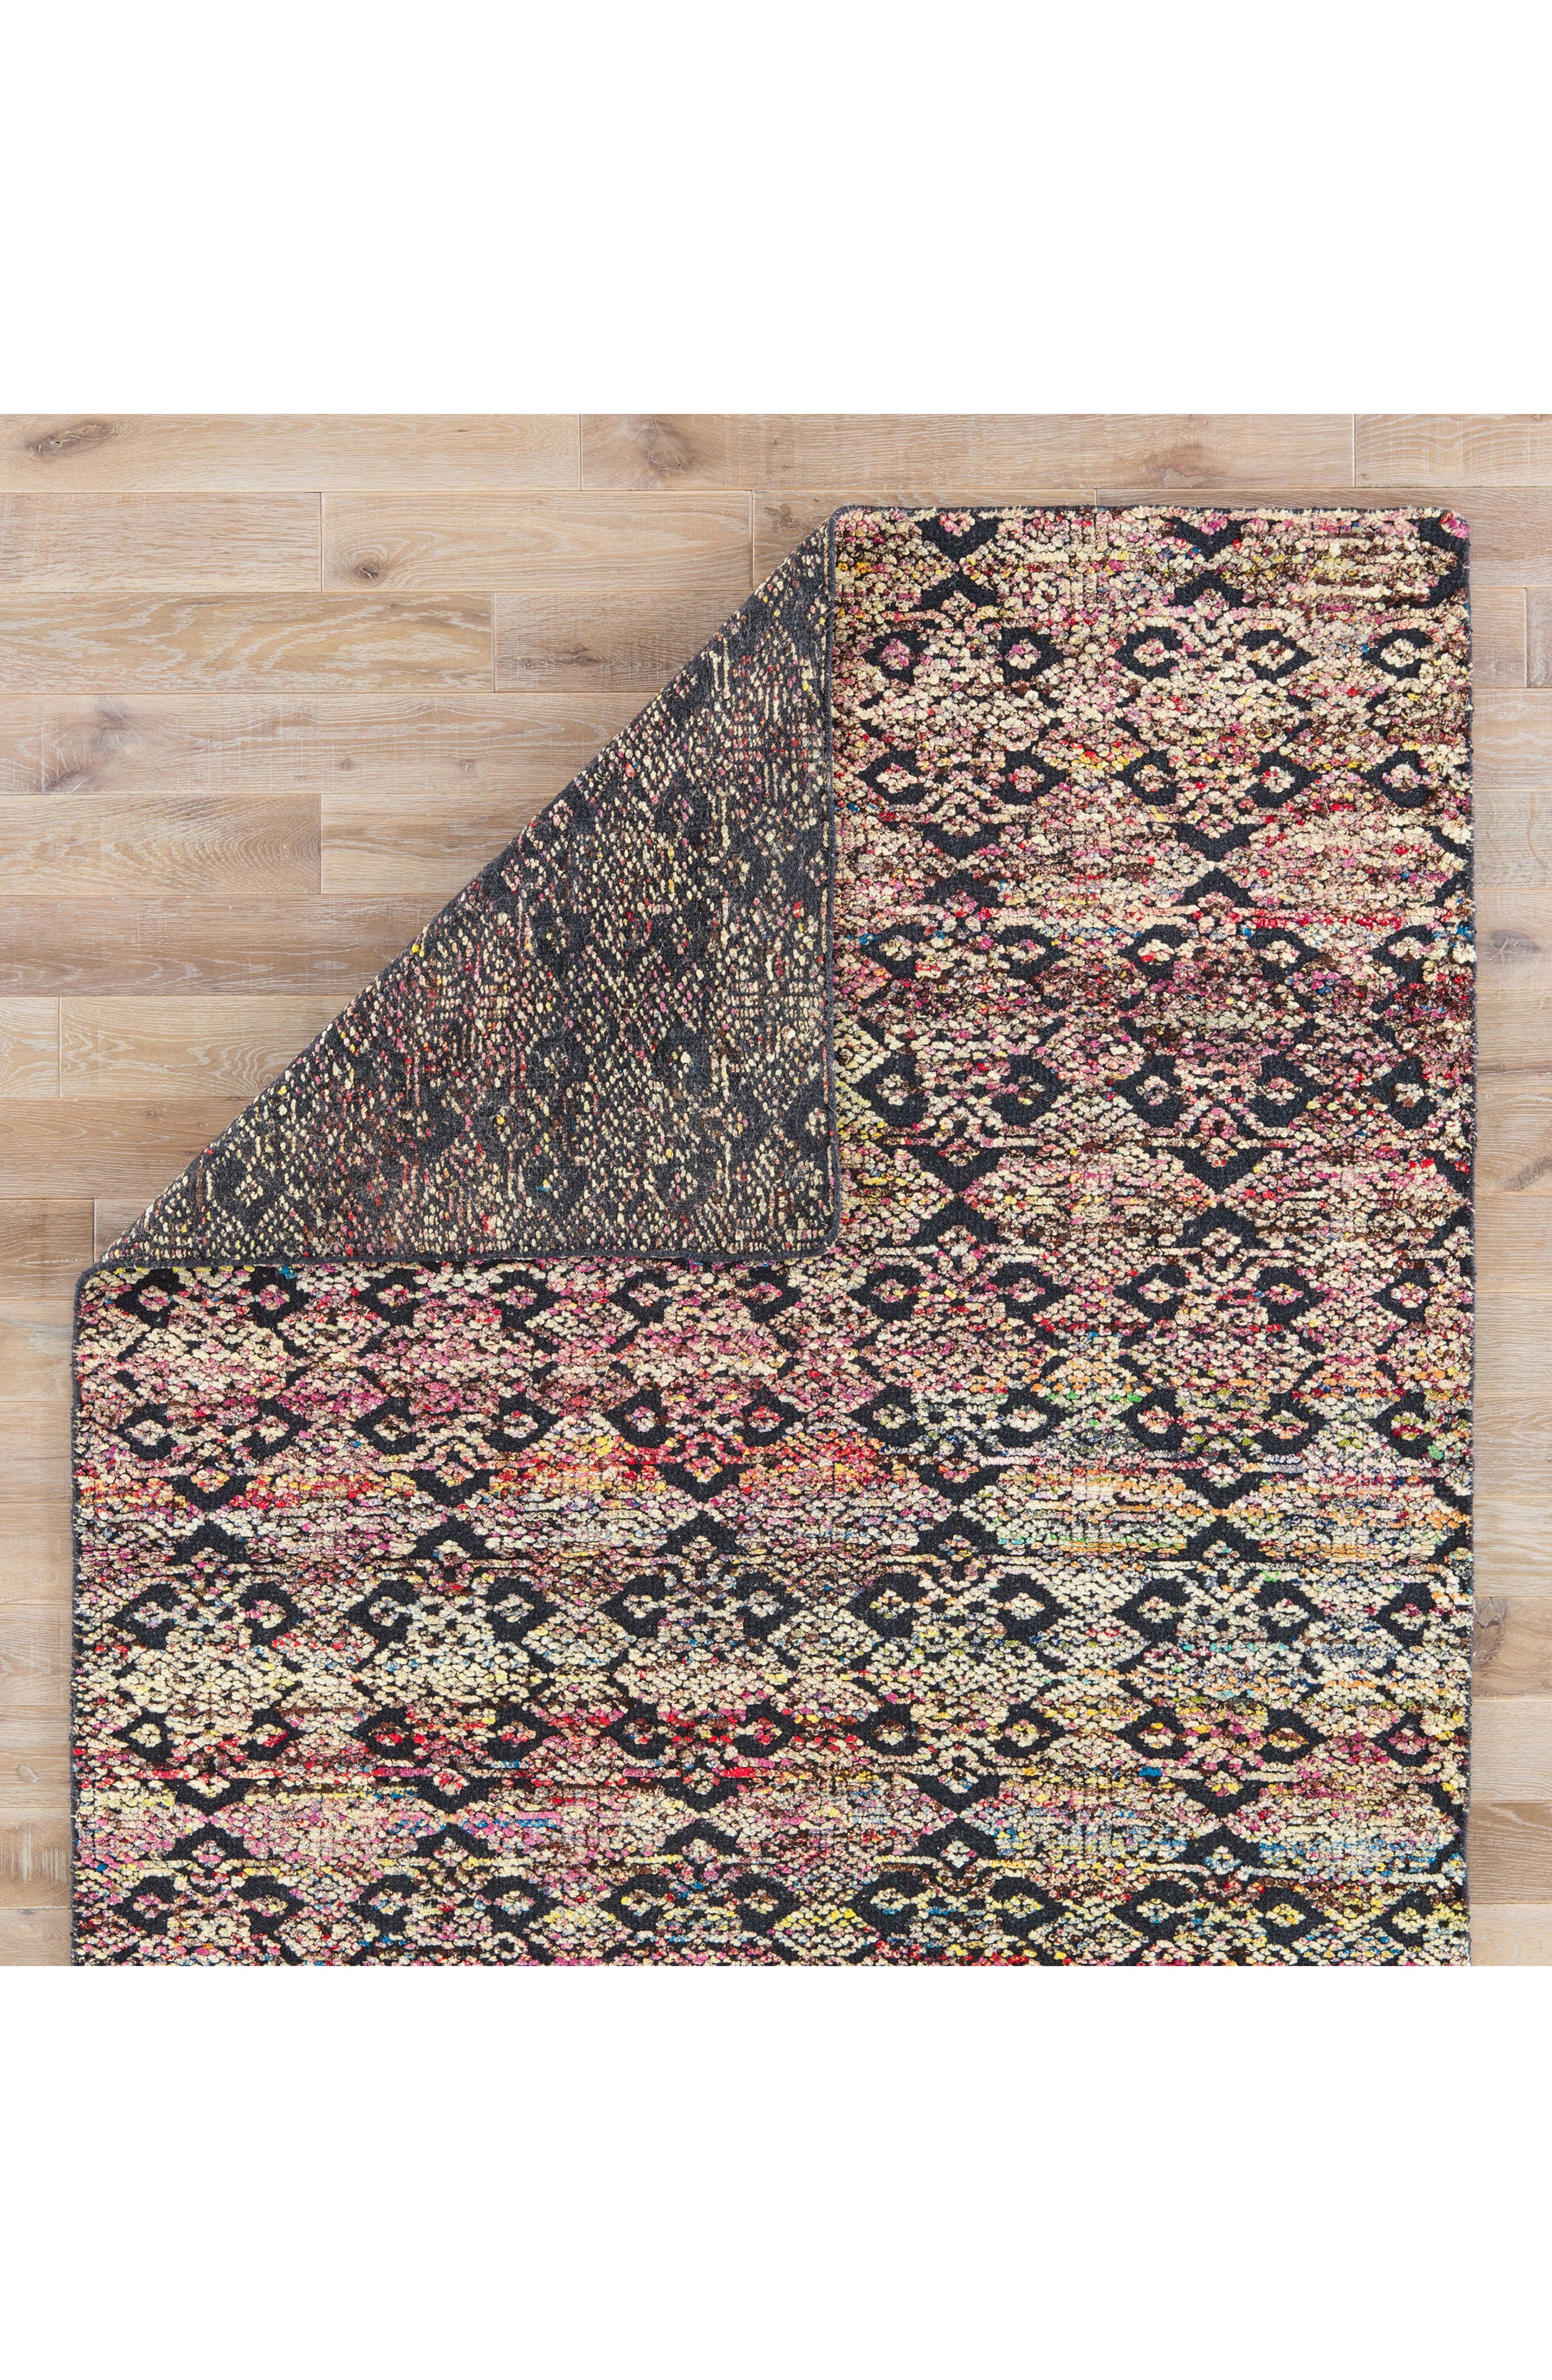 Jaipur All Rugs